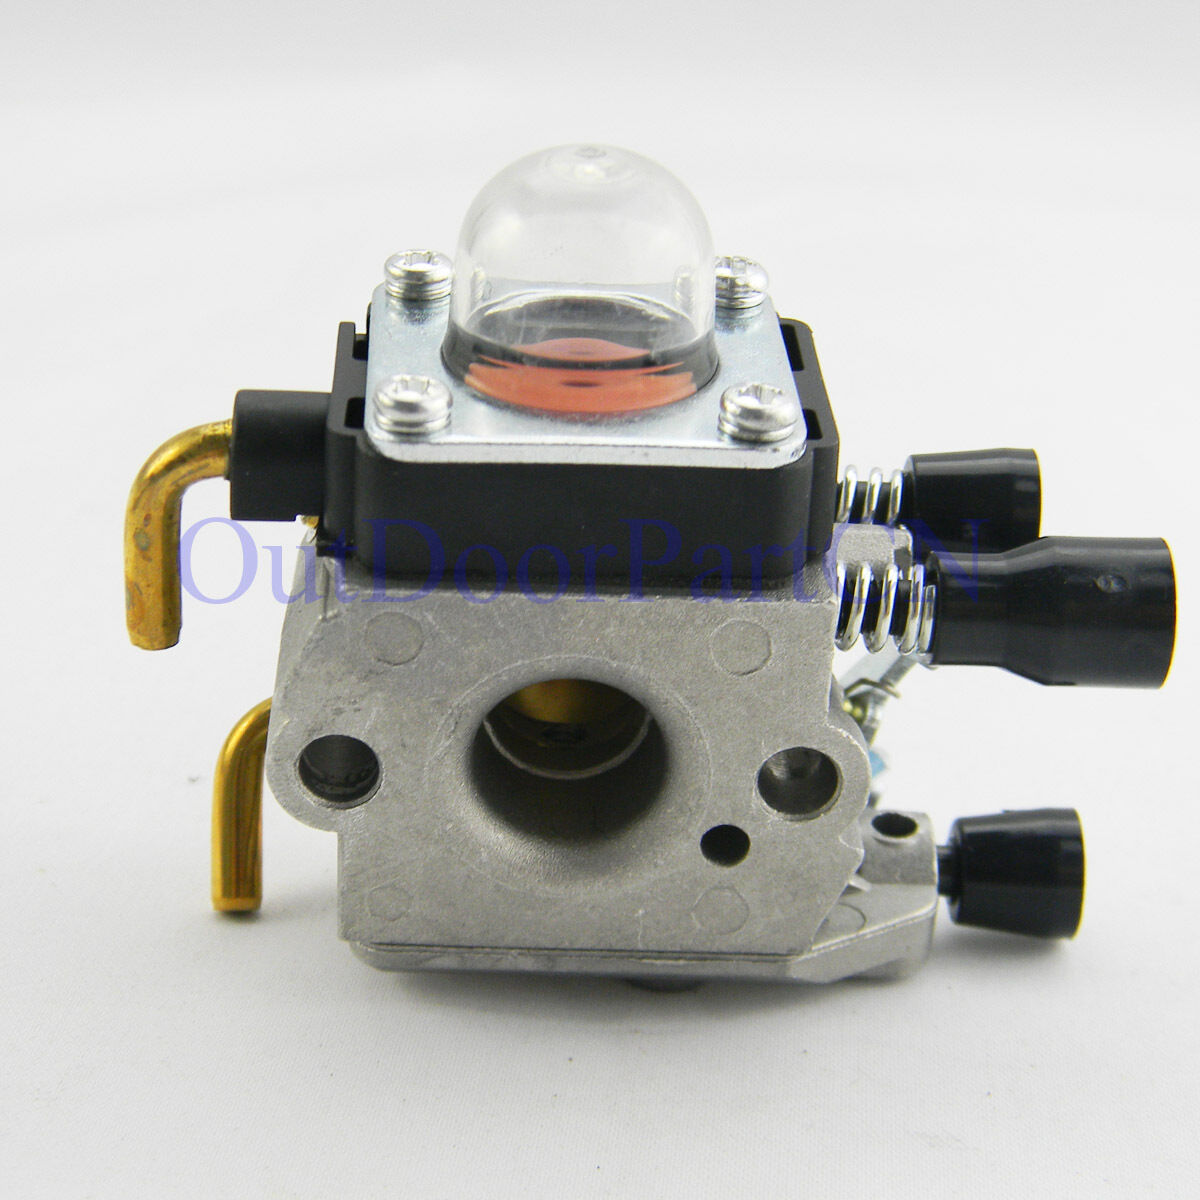 carburetor part fits stihl fs38 fs45 fs46 fs55 fs55r. Black Bedroom Furniture Sets. Home Design Ideas